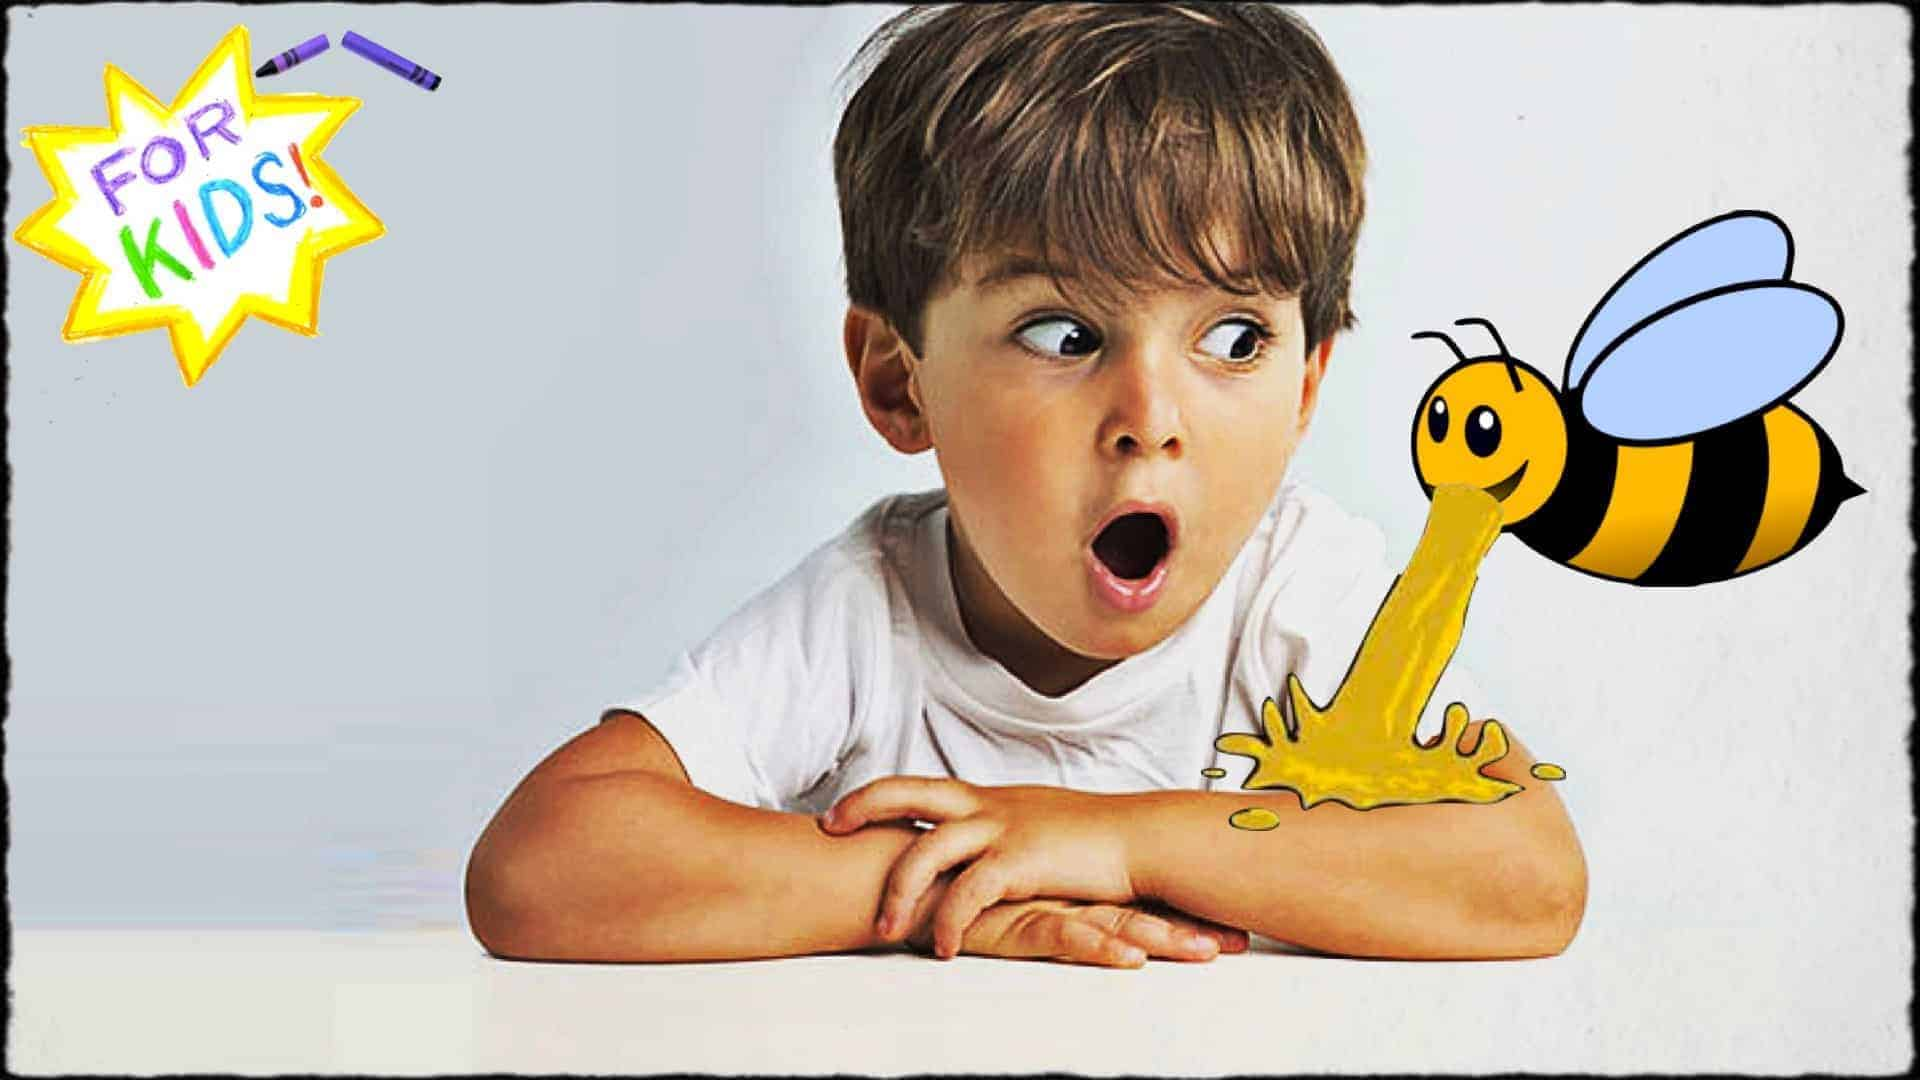 """A young child is shown sat at a table. Their arms are folded and resting upon the table. A large cartoon bee is seen to be regurgitating honey onto the child's arm. The child has a look of awe upon their face. A white and yellow star is shown in the top left-hand corner. The appearance is one rendered in crayon. Across the center of the star are the words """"For Kids""""."""